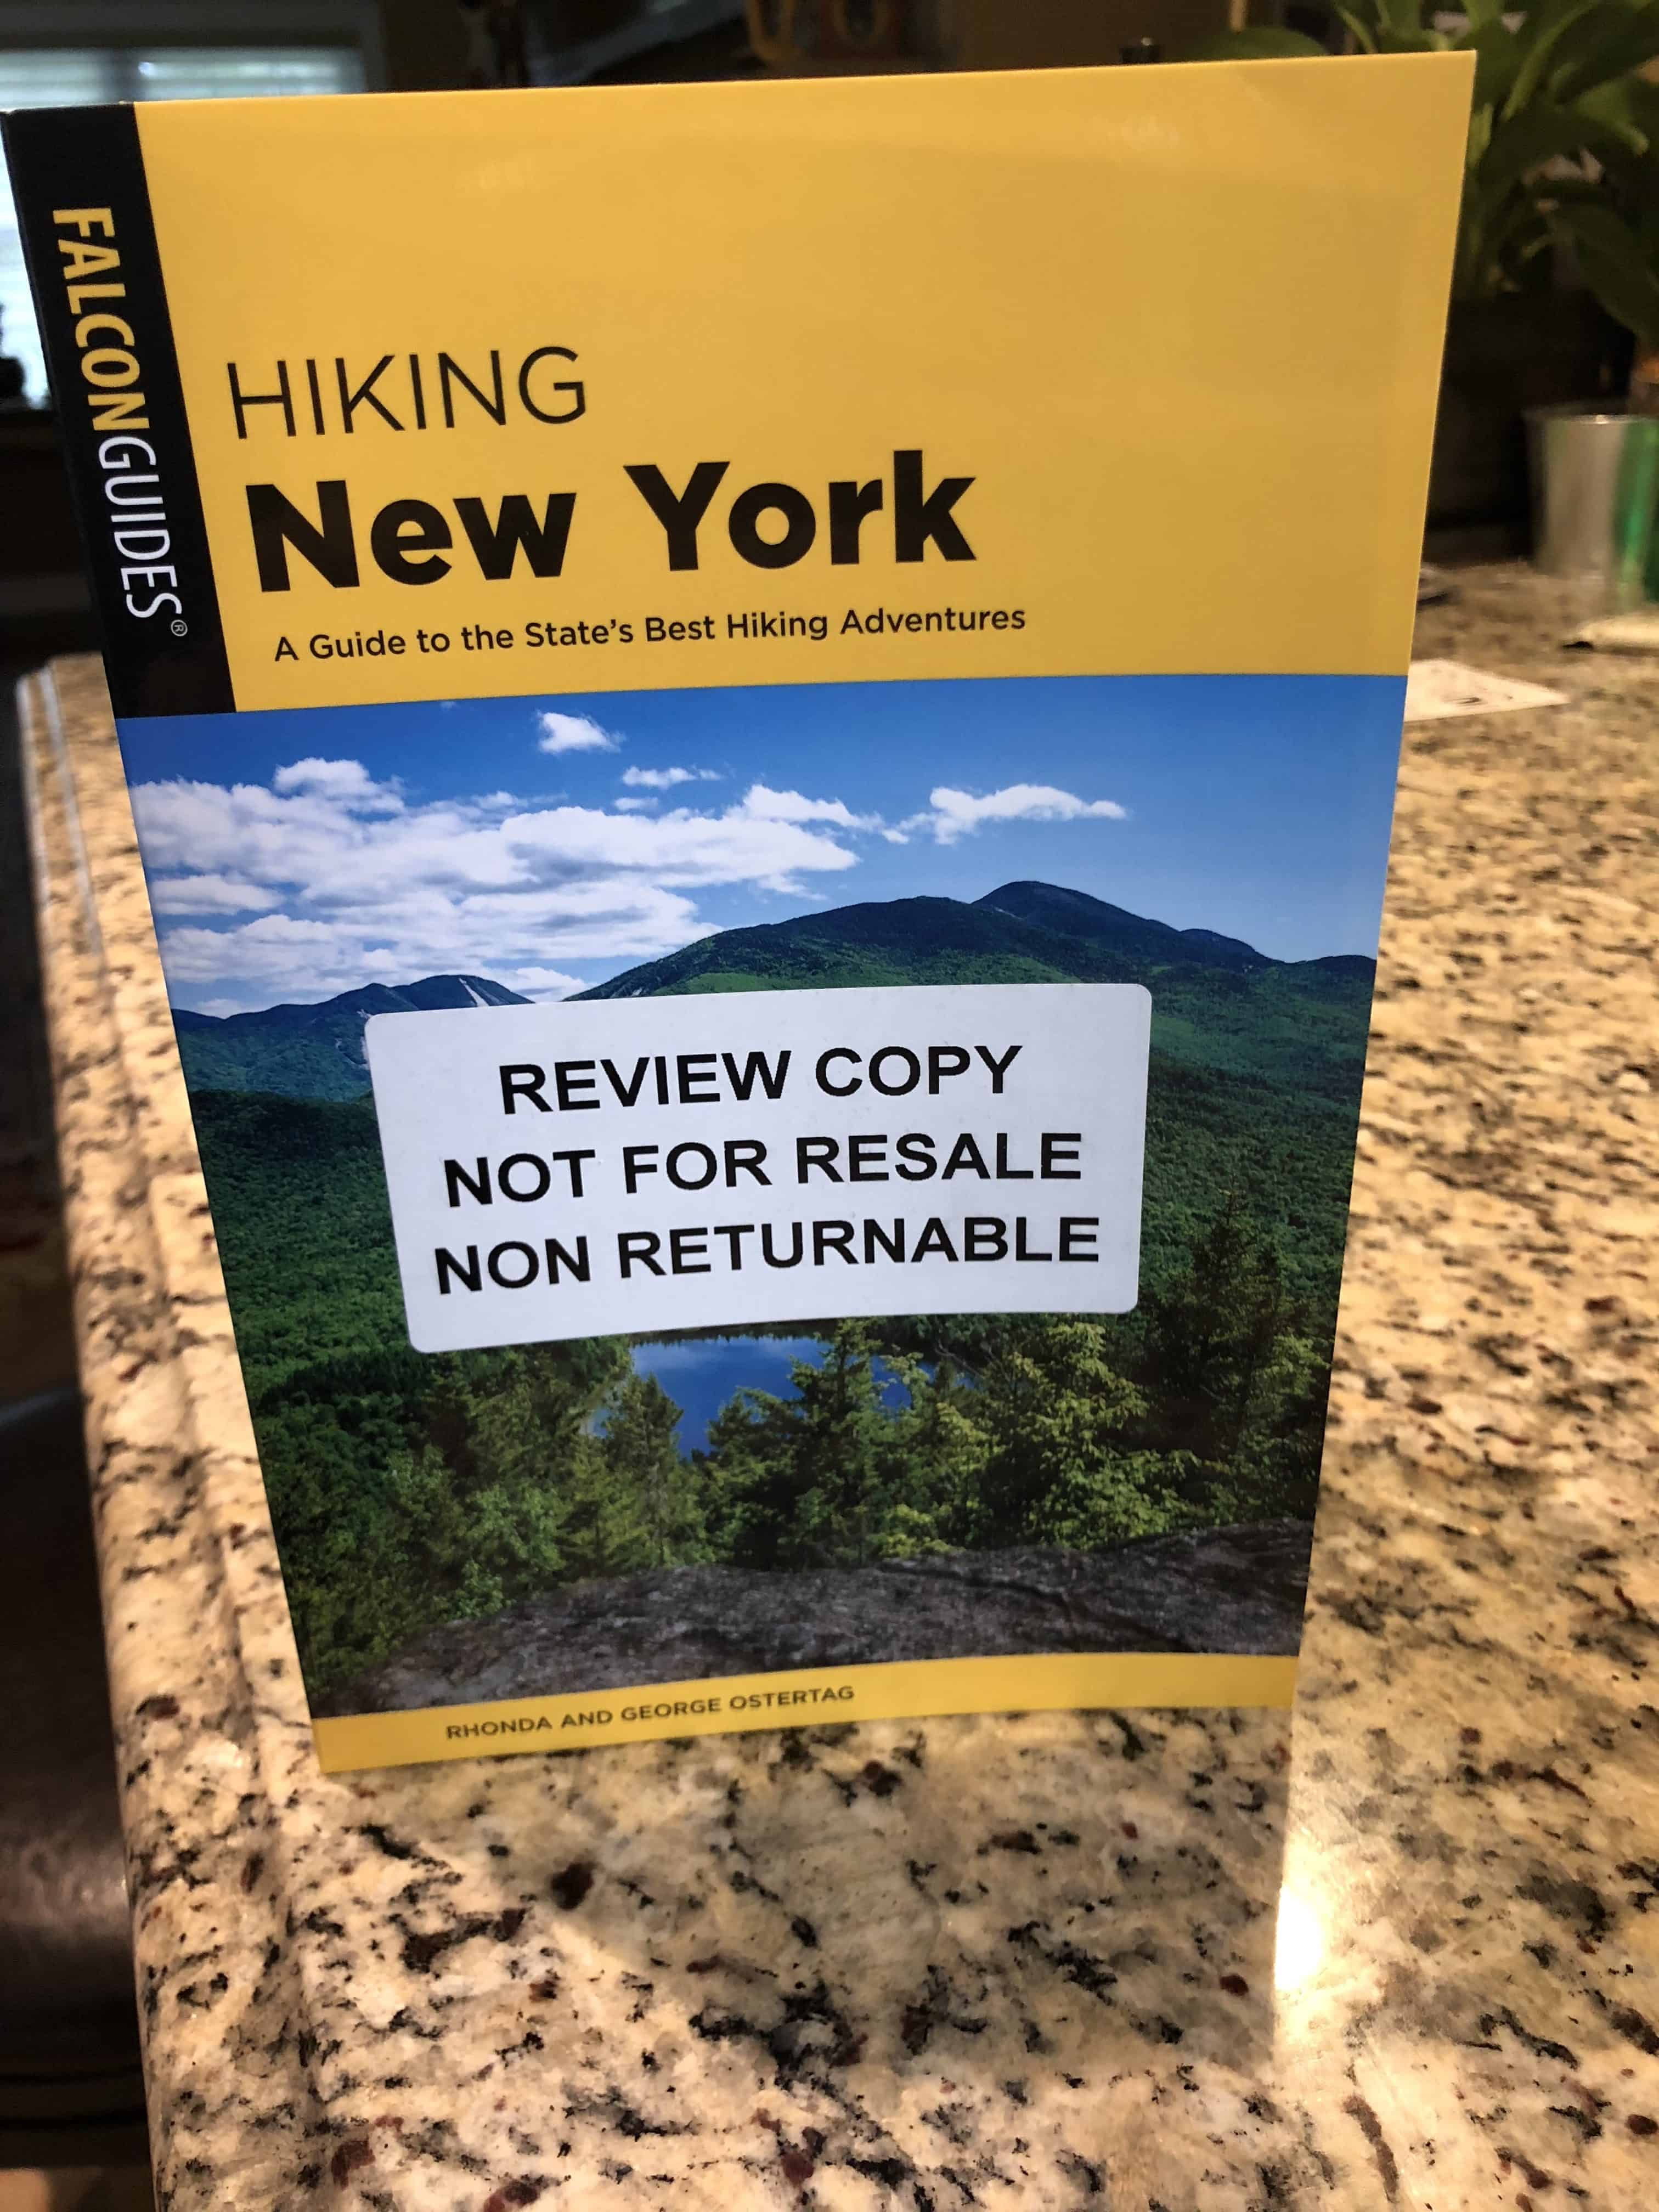 Hiking New York - A Guide to the State's Best Hiking Adventures book